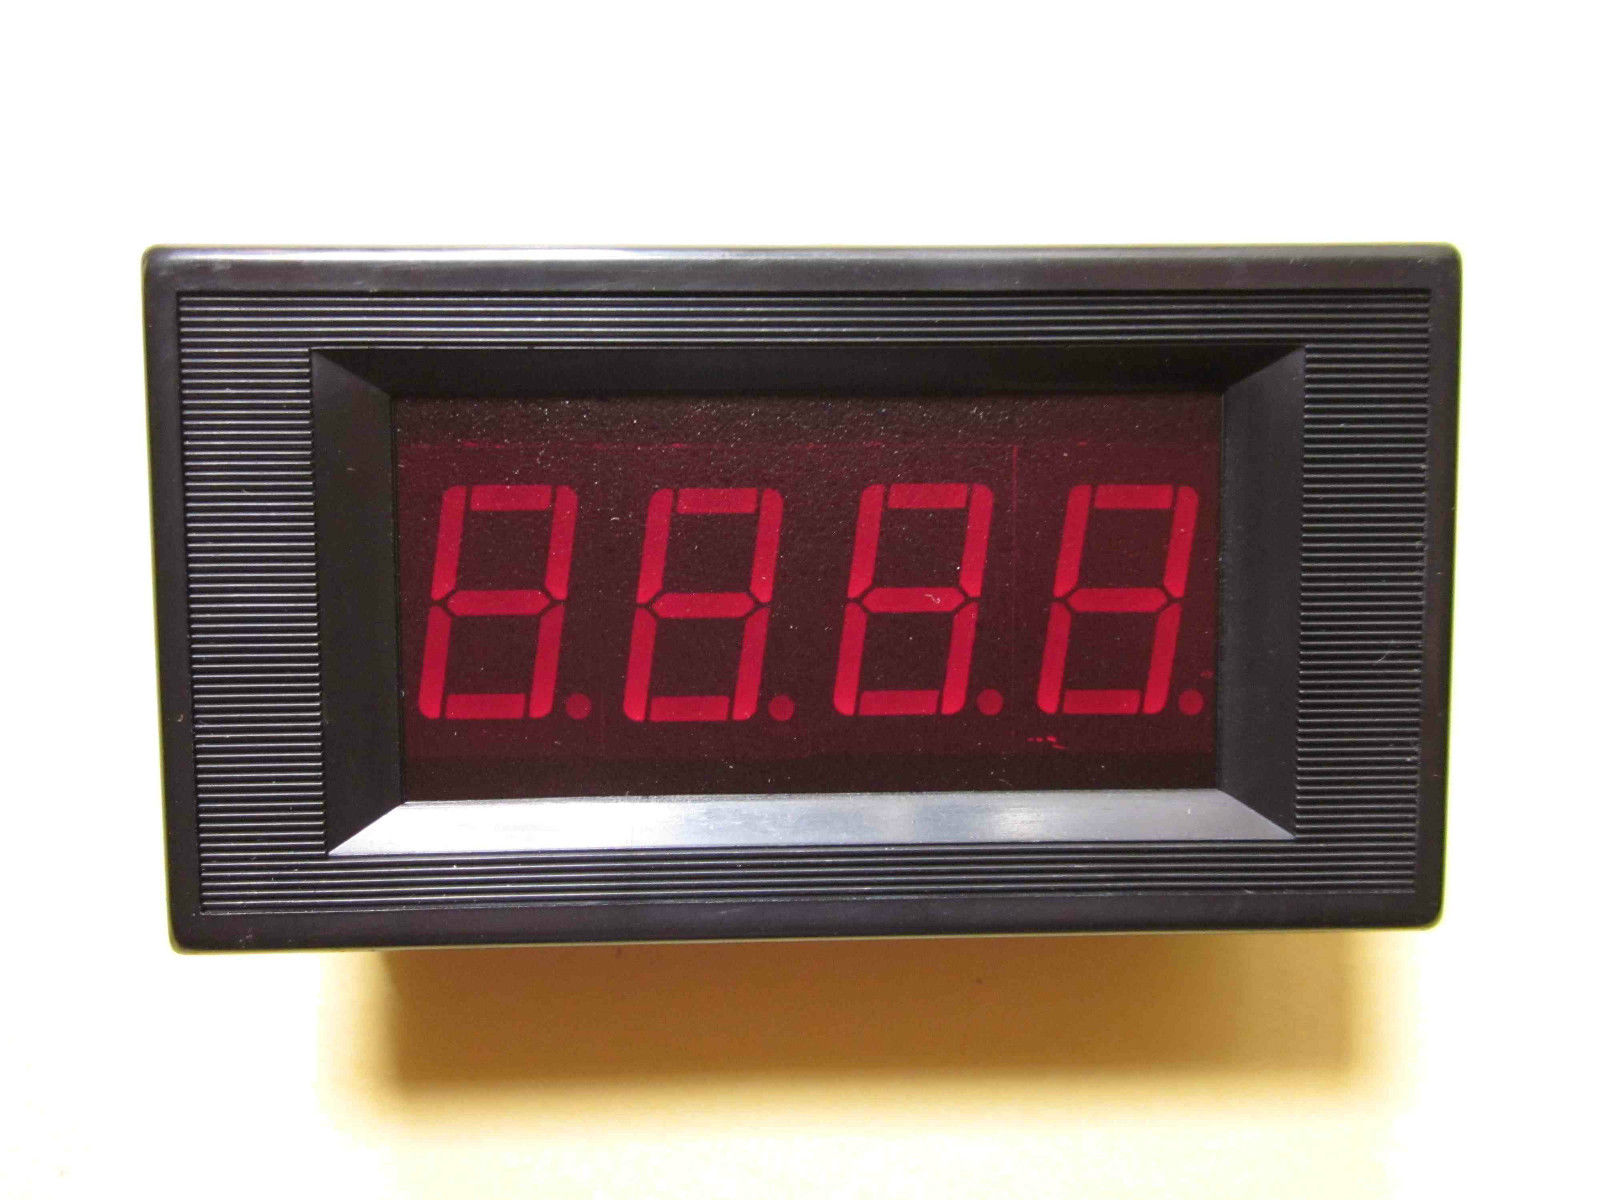 new 0 200a red led dc digital panel ammeter 200a amp. Black Bedroom Furniture Sets. Home Design Ideas